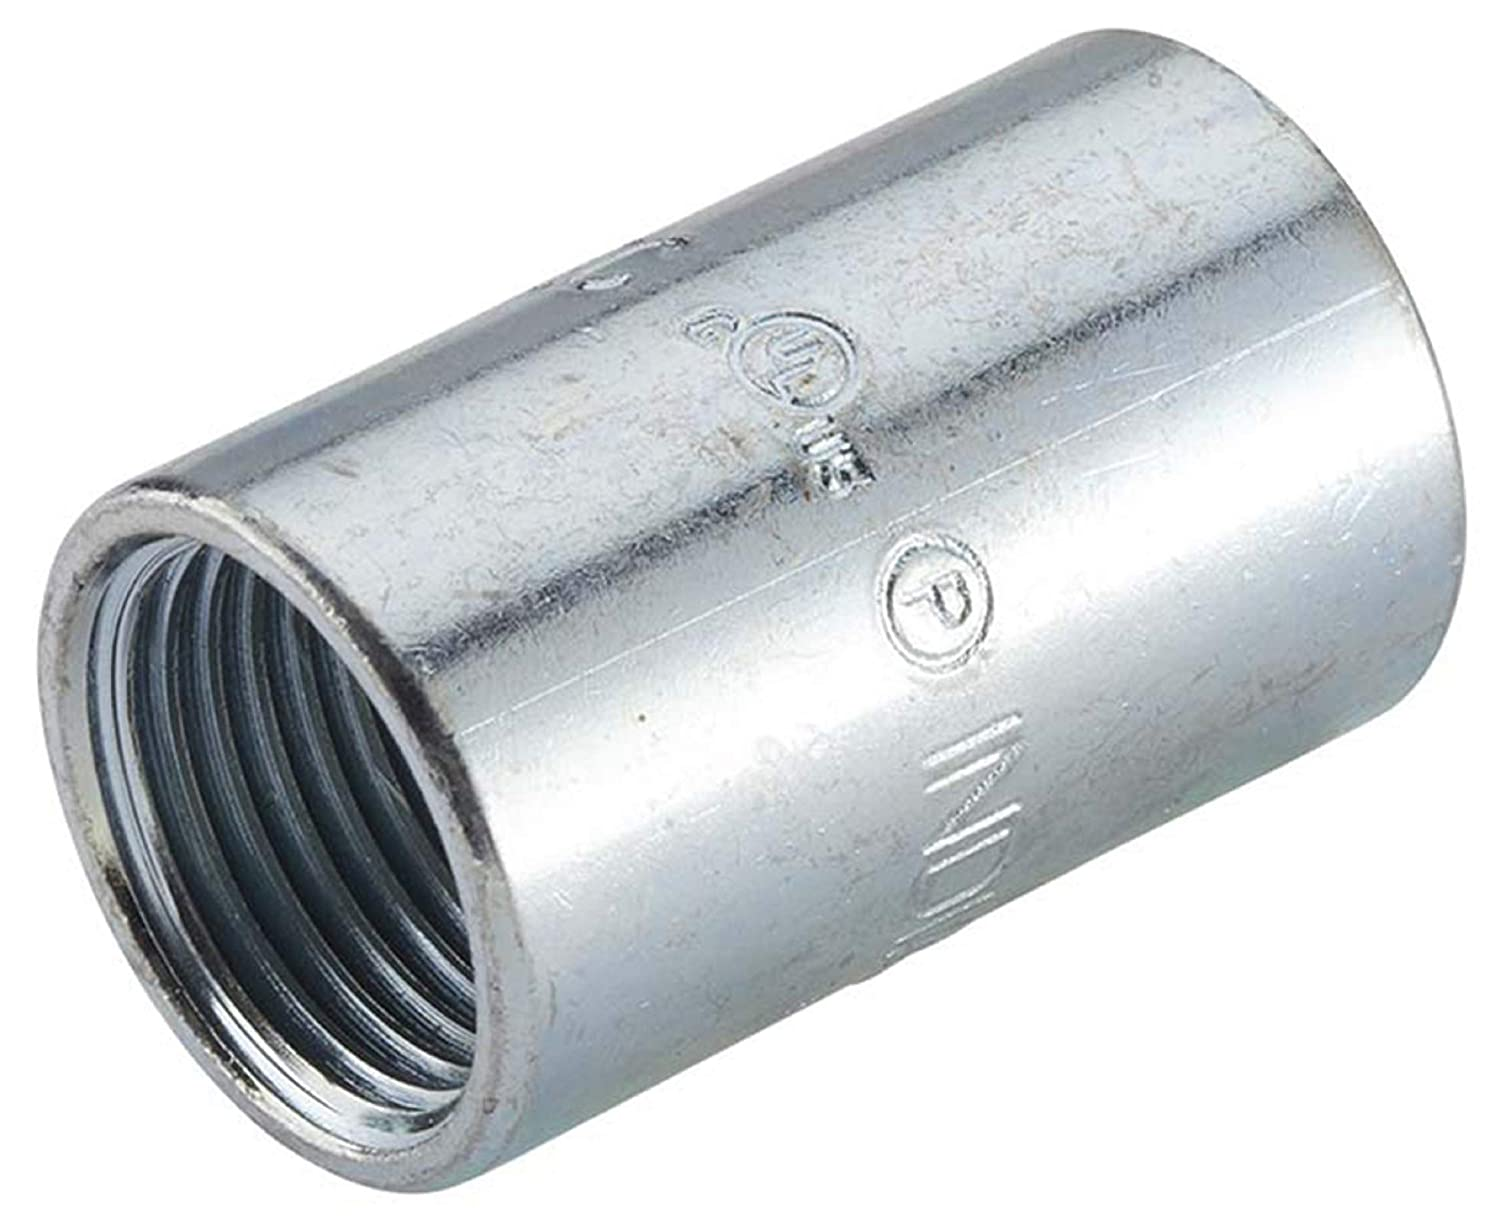 Halex 64010 RIGID THREADED COUPLING EACH 1 Silver